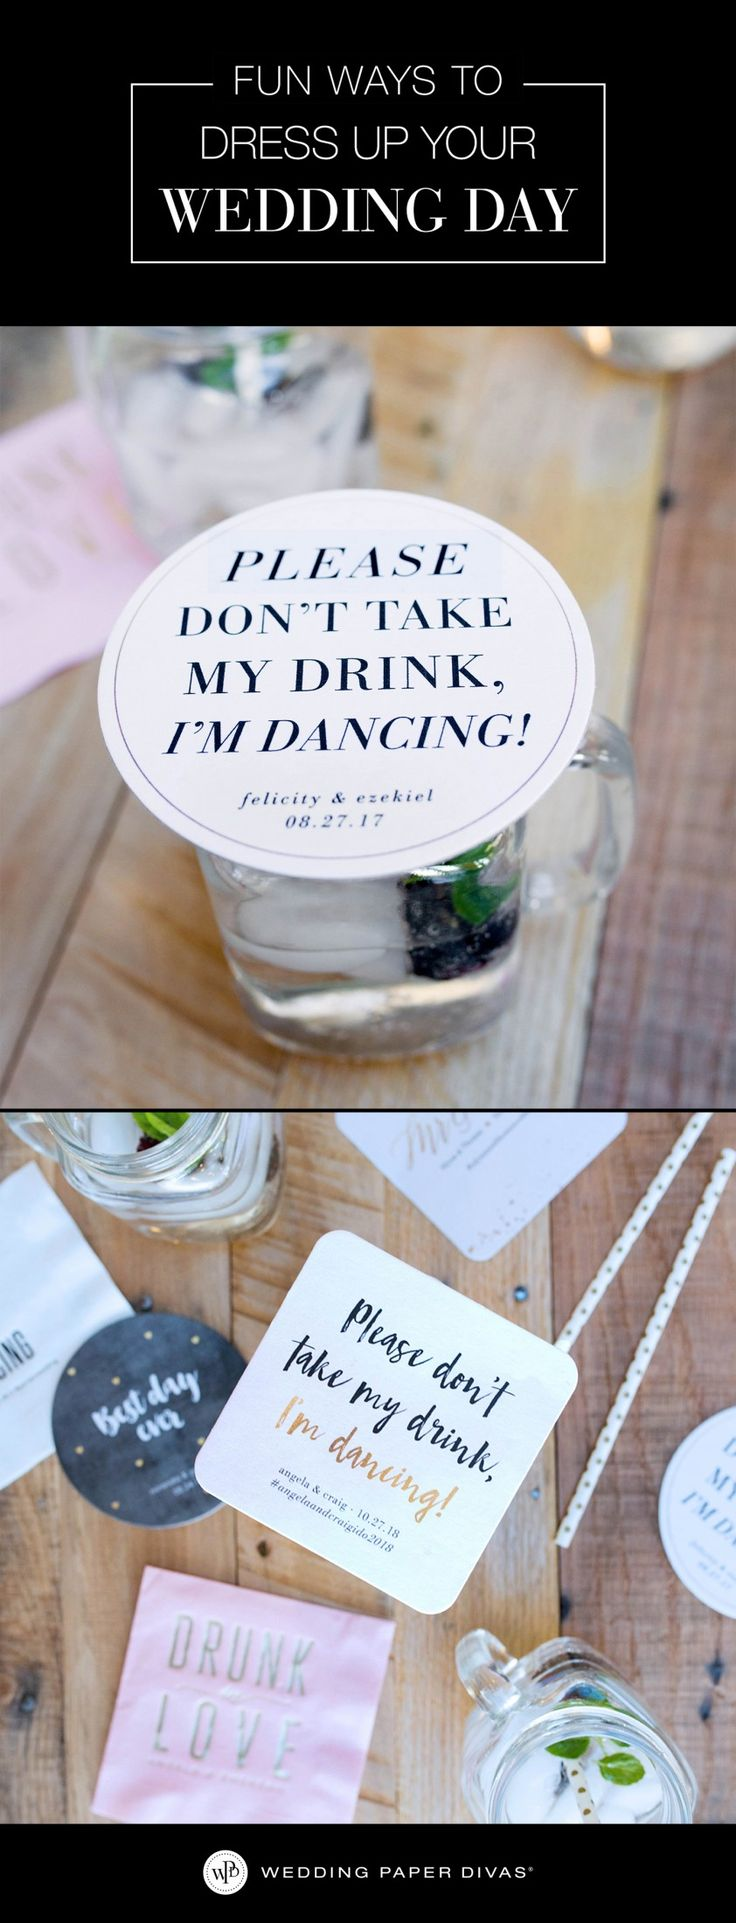 [ad] Fun and functional cocktail accessories to keep them dancing all night long. Small details bring your party to a whole new extraordinary level.